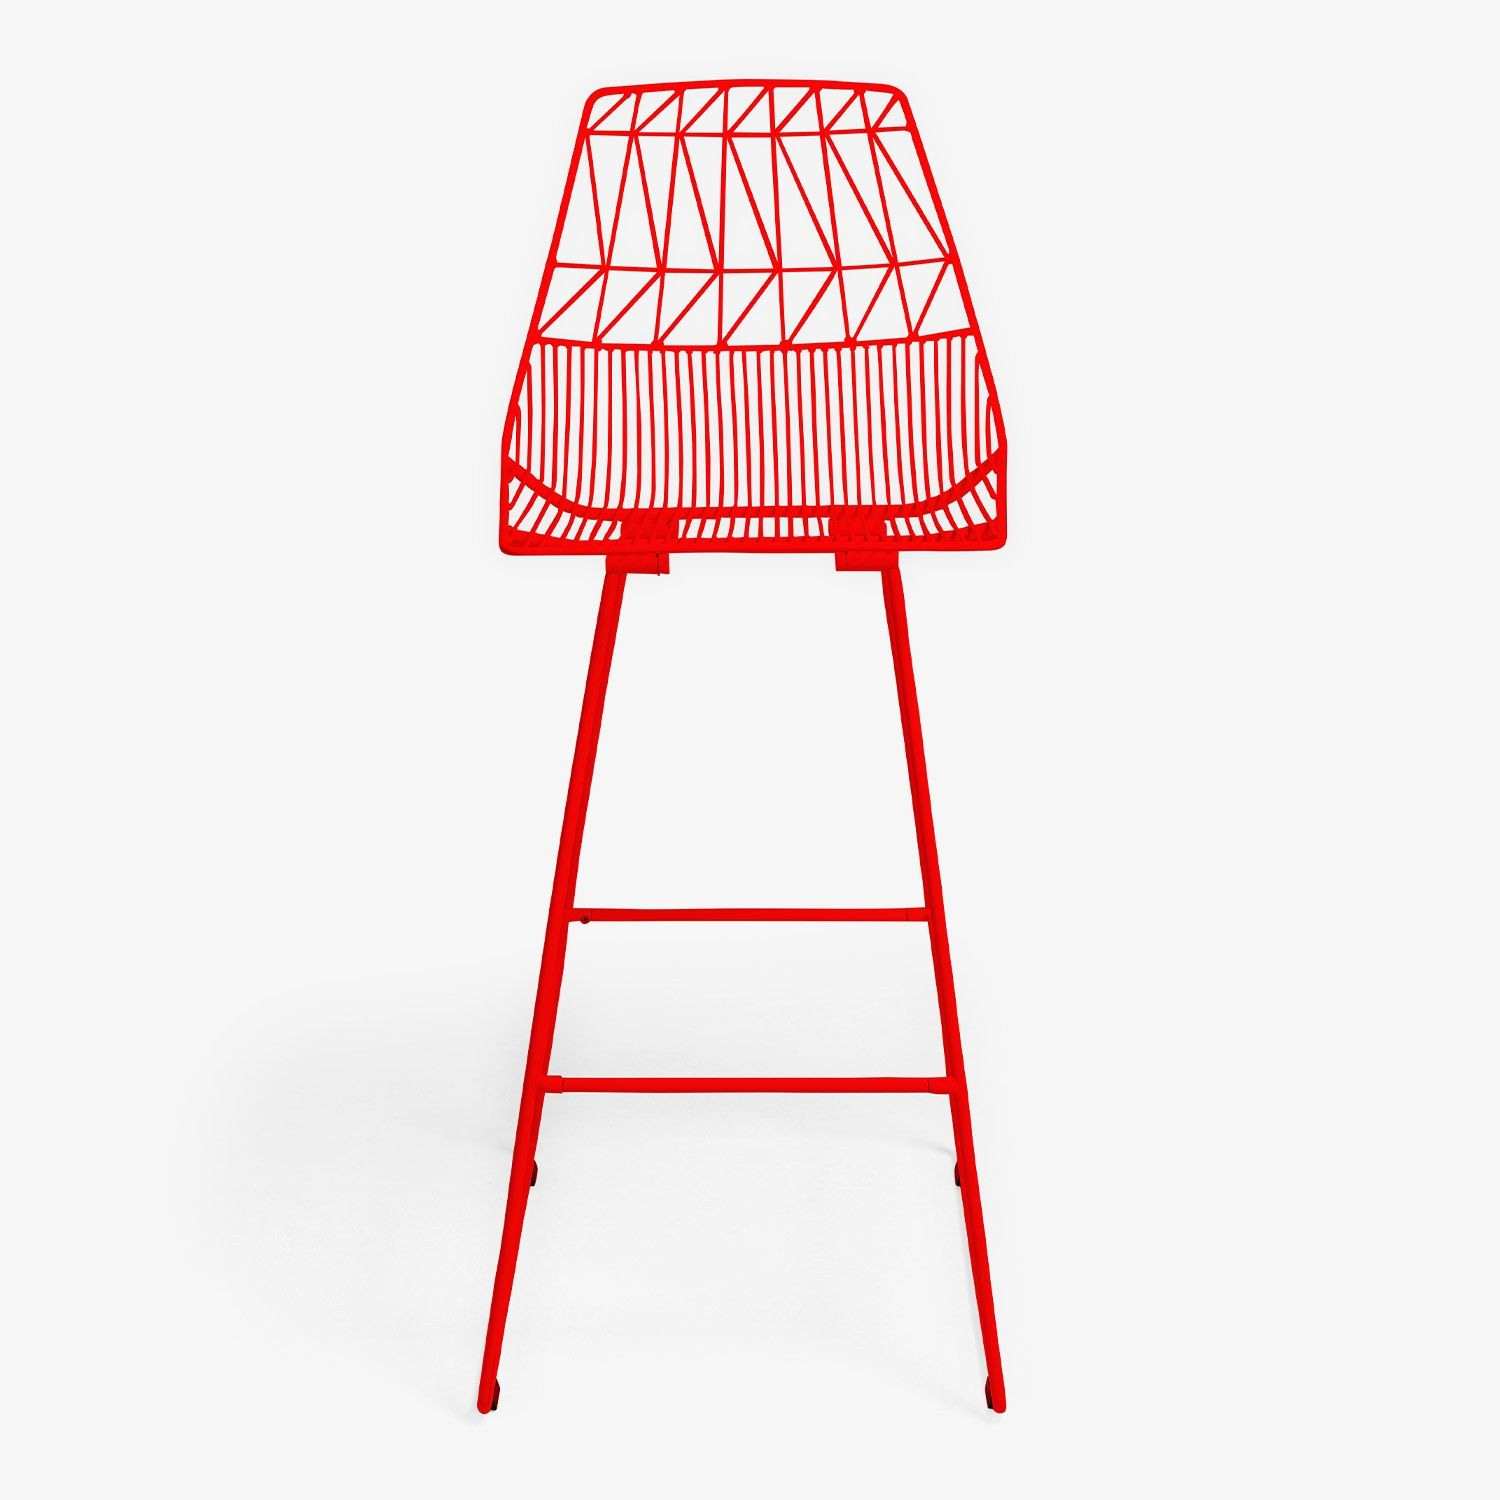 Discover The Bend Goods Bar Stool In Red At ABC Carpet U0026 Home. Interpreting  Basket Weaving Techniques In Bright, Playful Style, The Bend Goods Red Bar  Stool ...